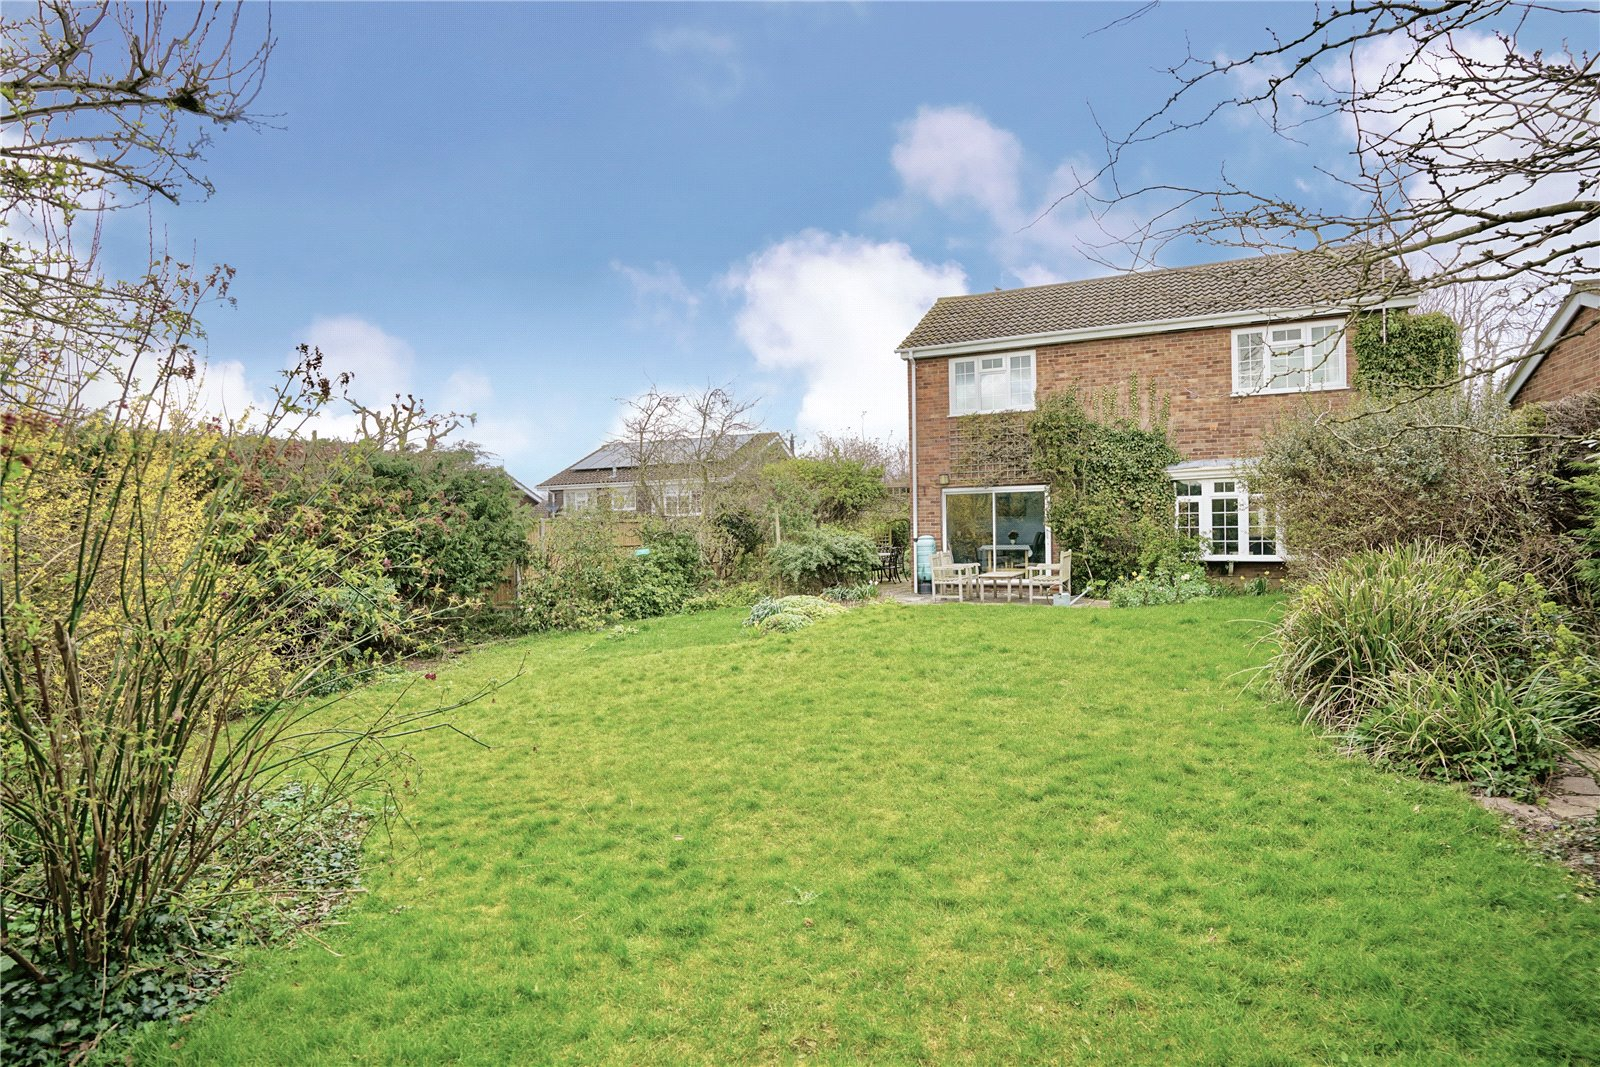 4 bed house for sale in Mint Lane, Great Paxton  - Property Image 5